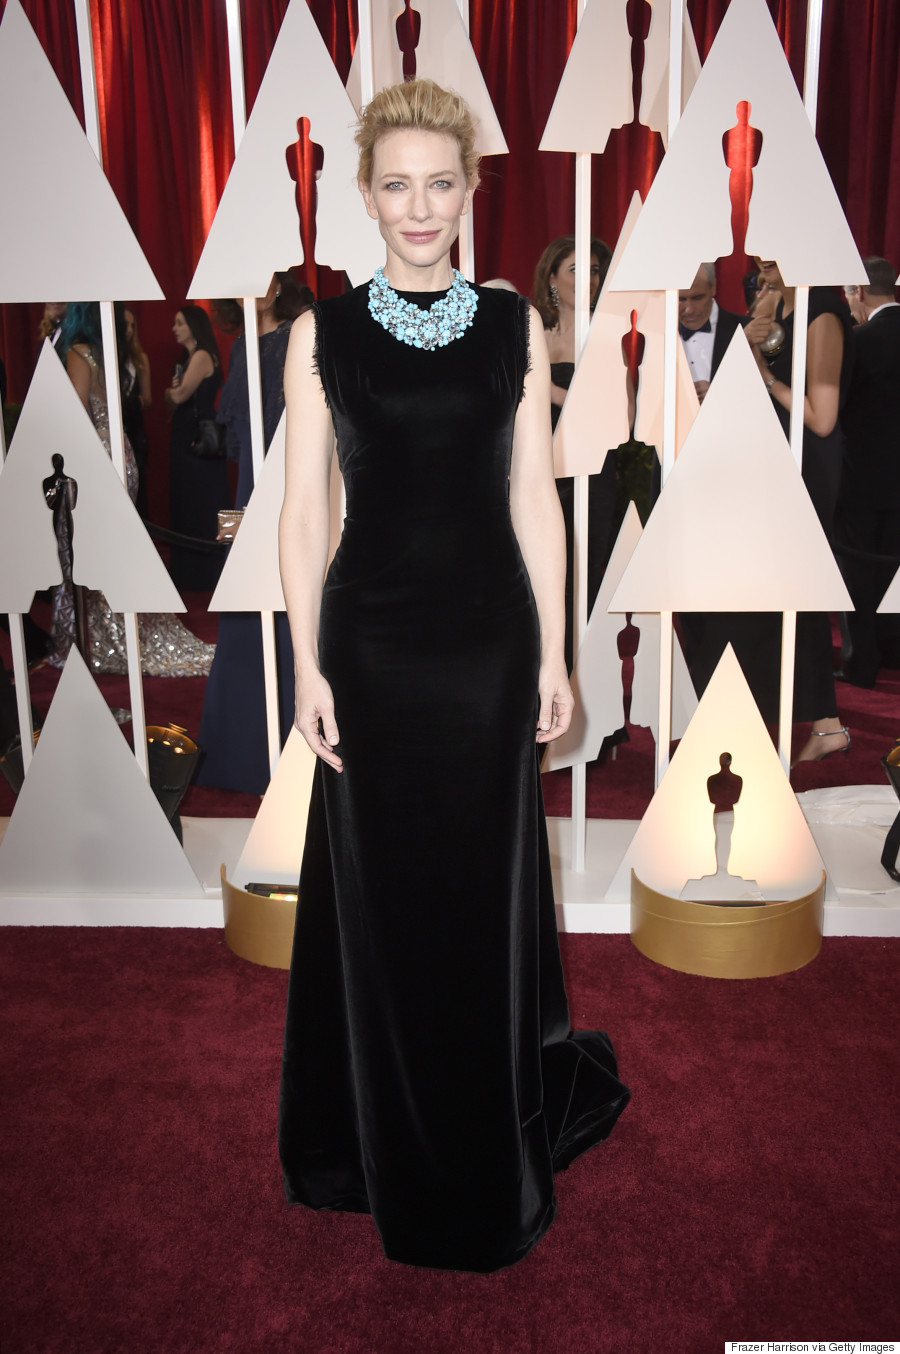 Cate Blanchetts Oscars 2015 Dress Gets Overshadowed By A